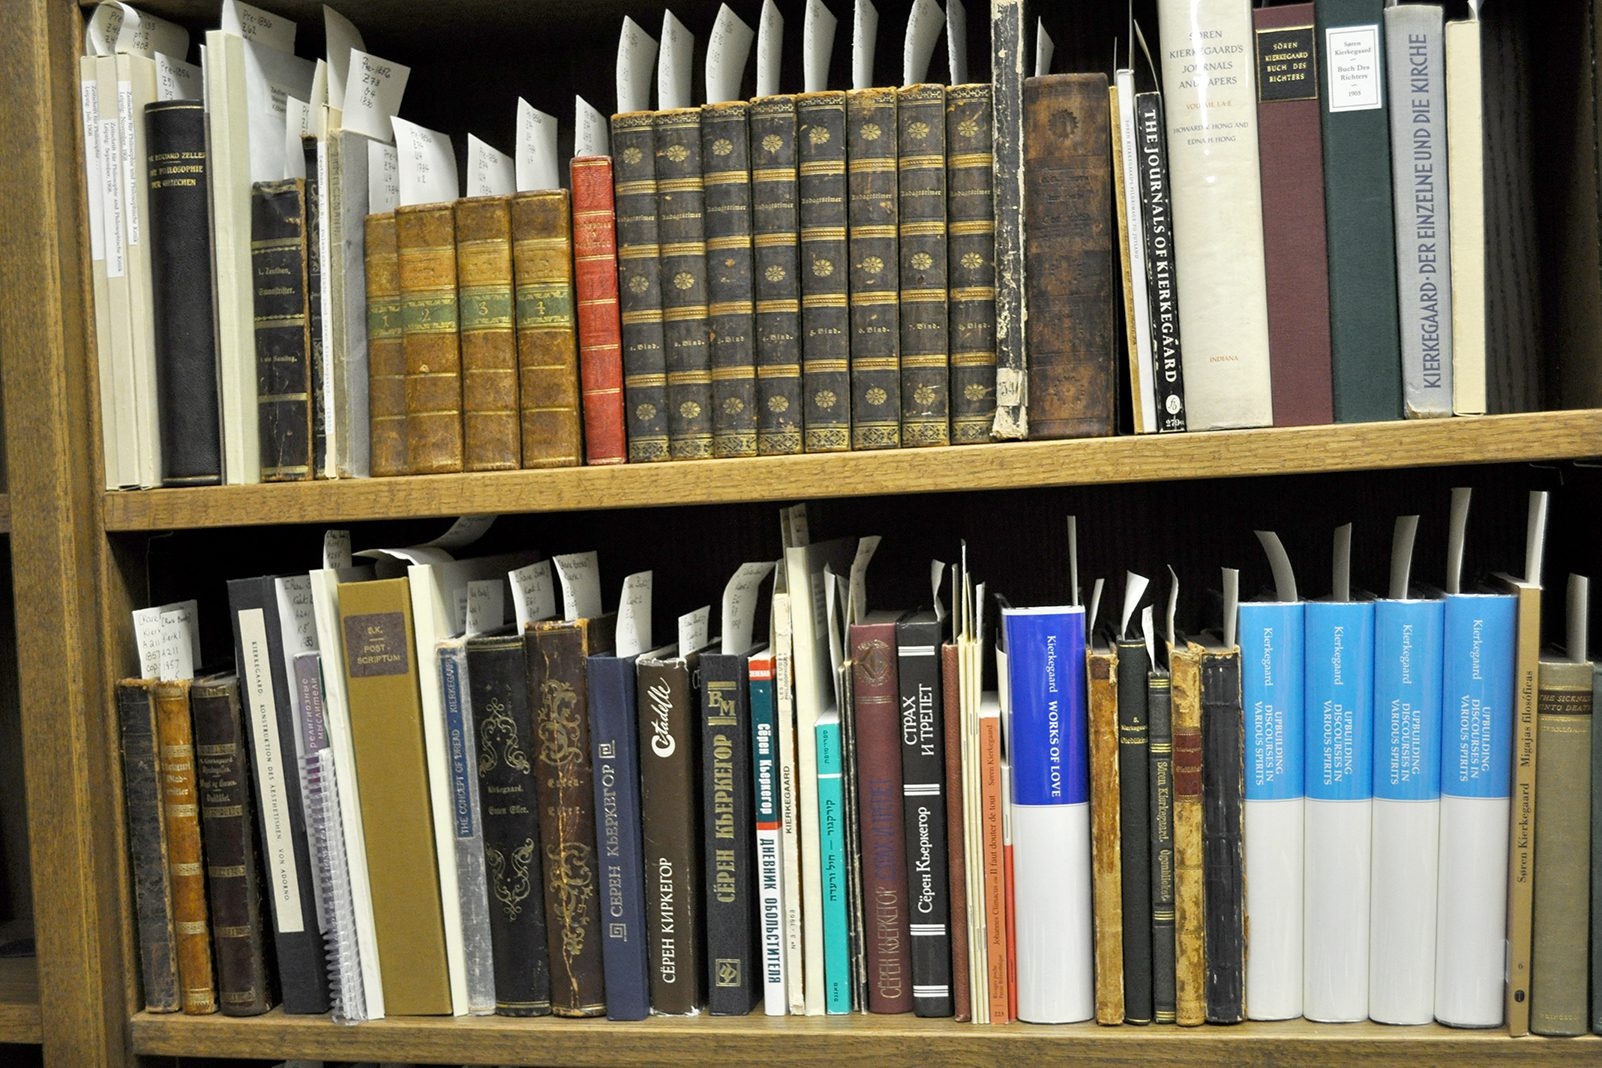 A shelf in the Hong Kierkegaard Library featuring works by and concerning the writings of 19th-century Danish philosopher Søren Kierkegaard.